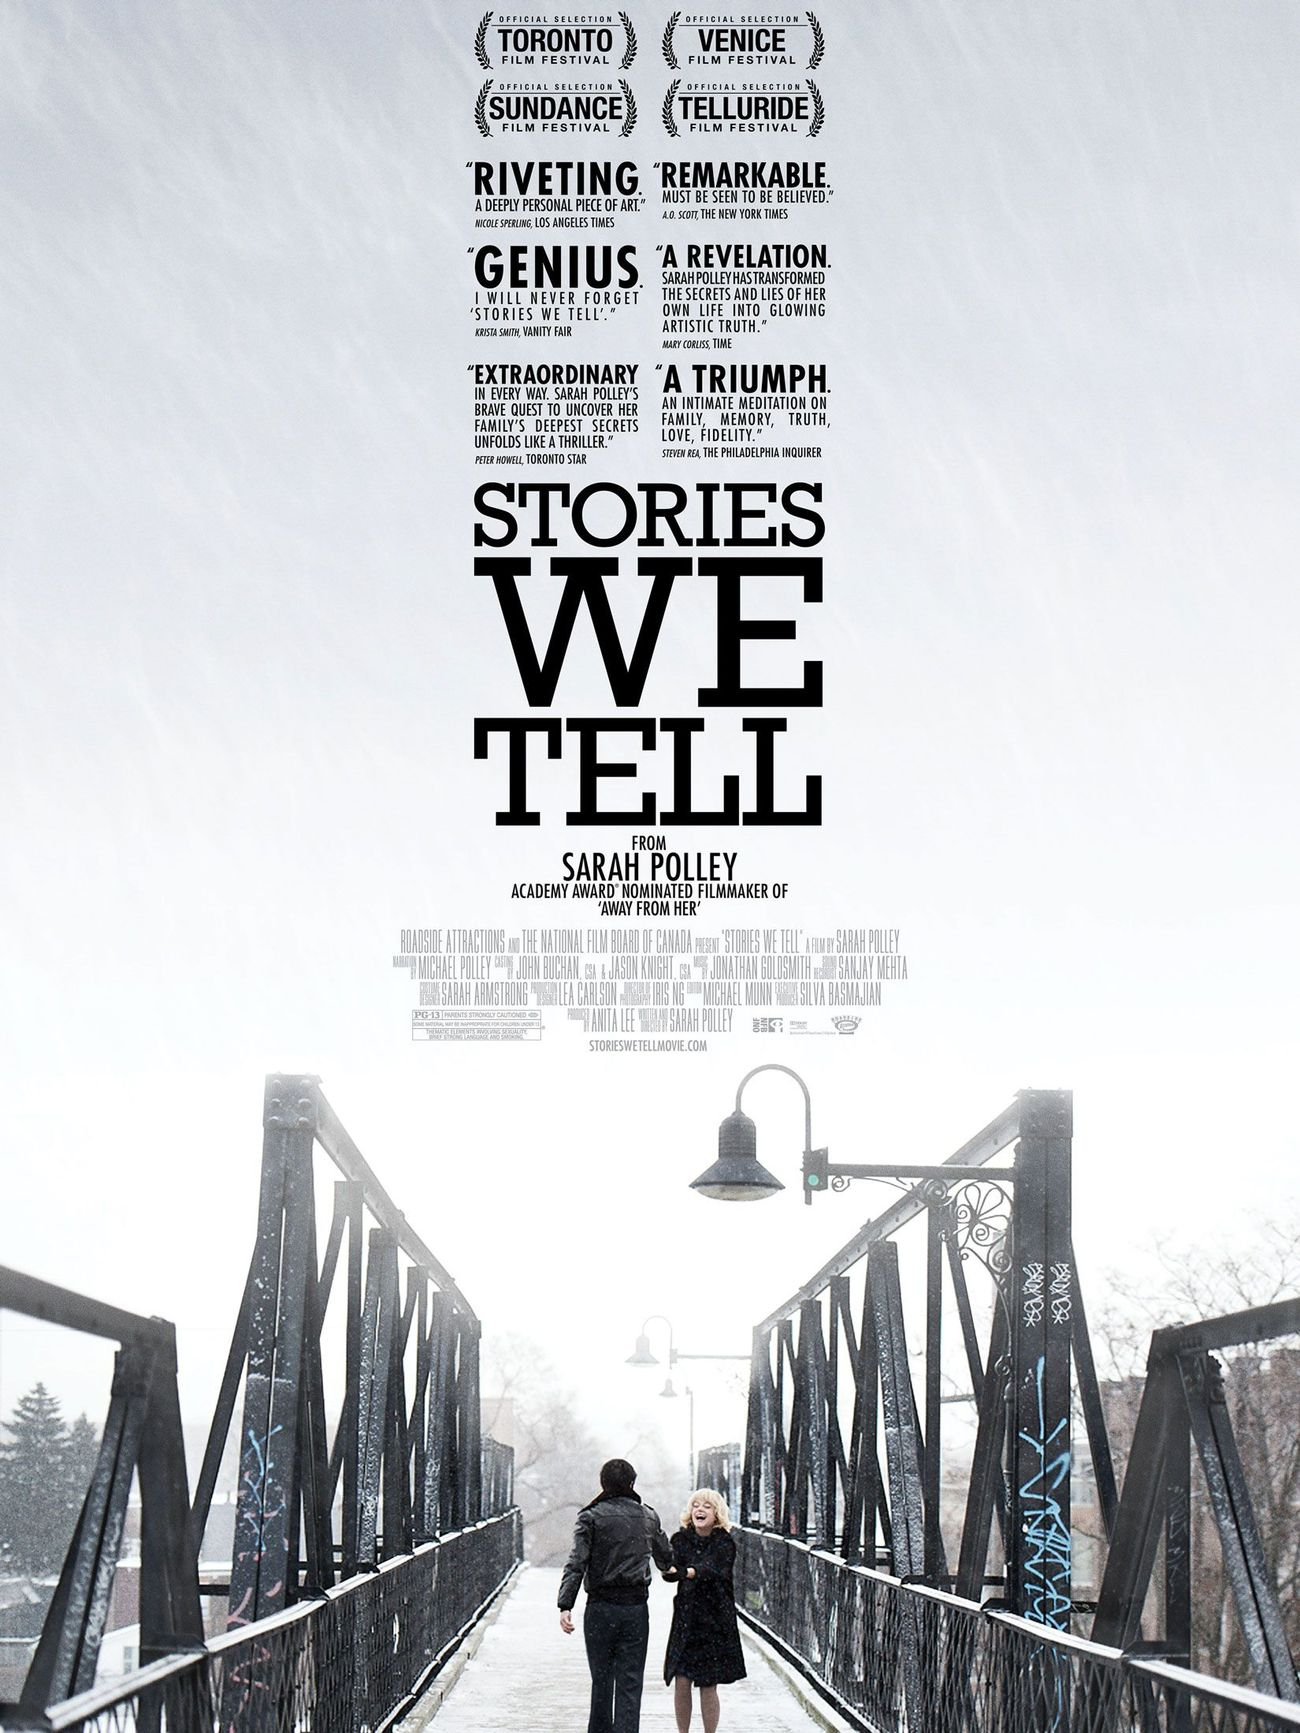 Film poster for Stories We Tell